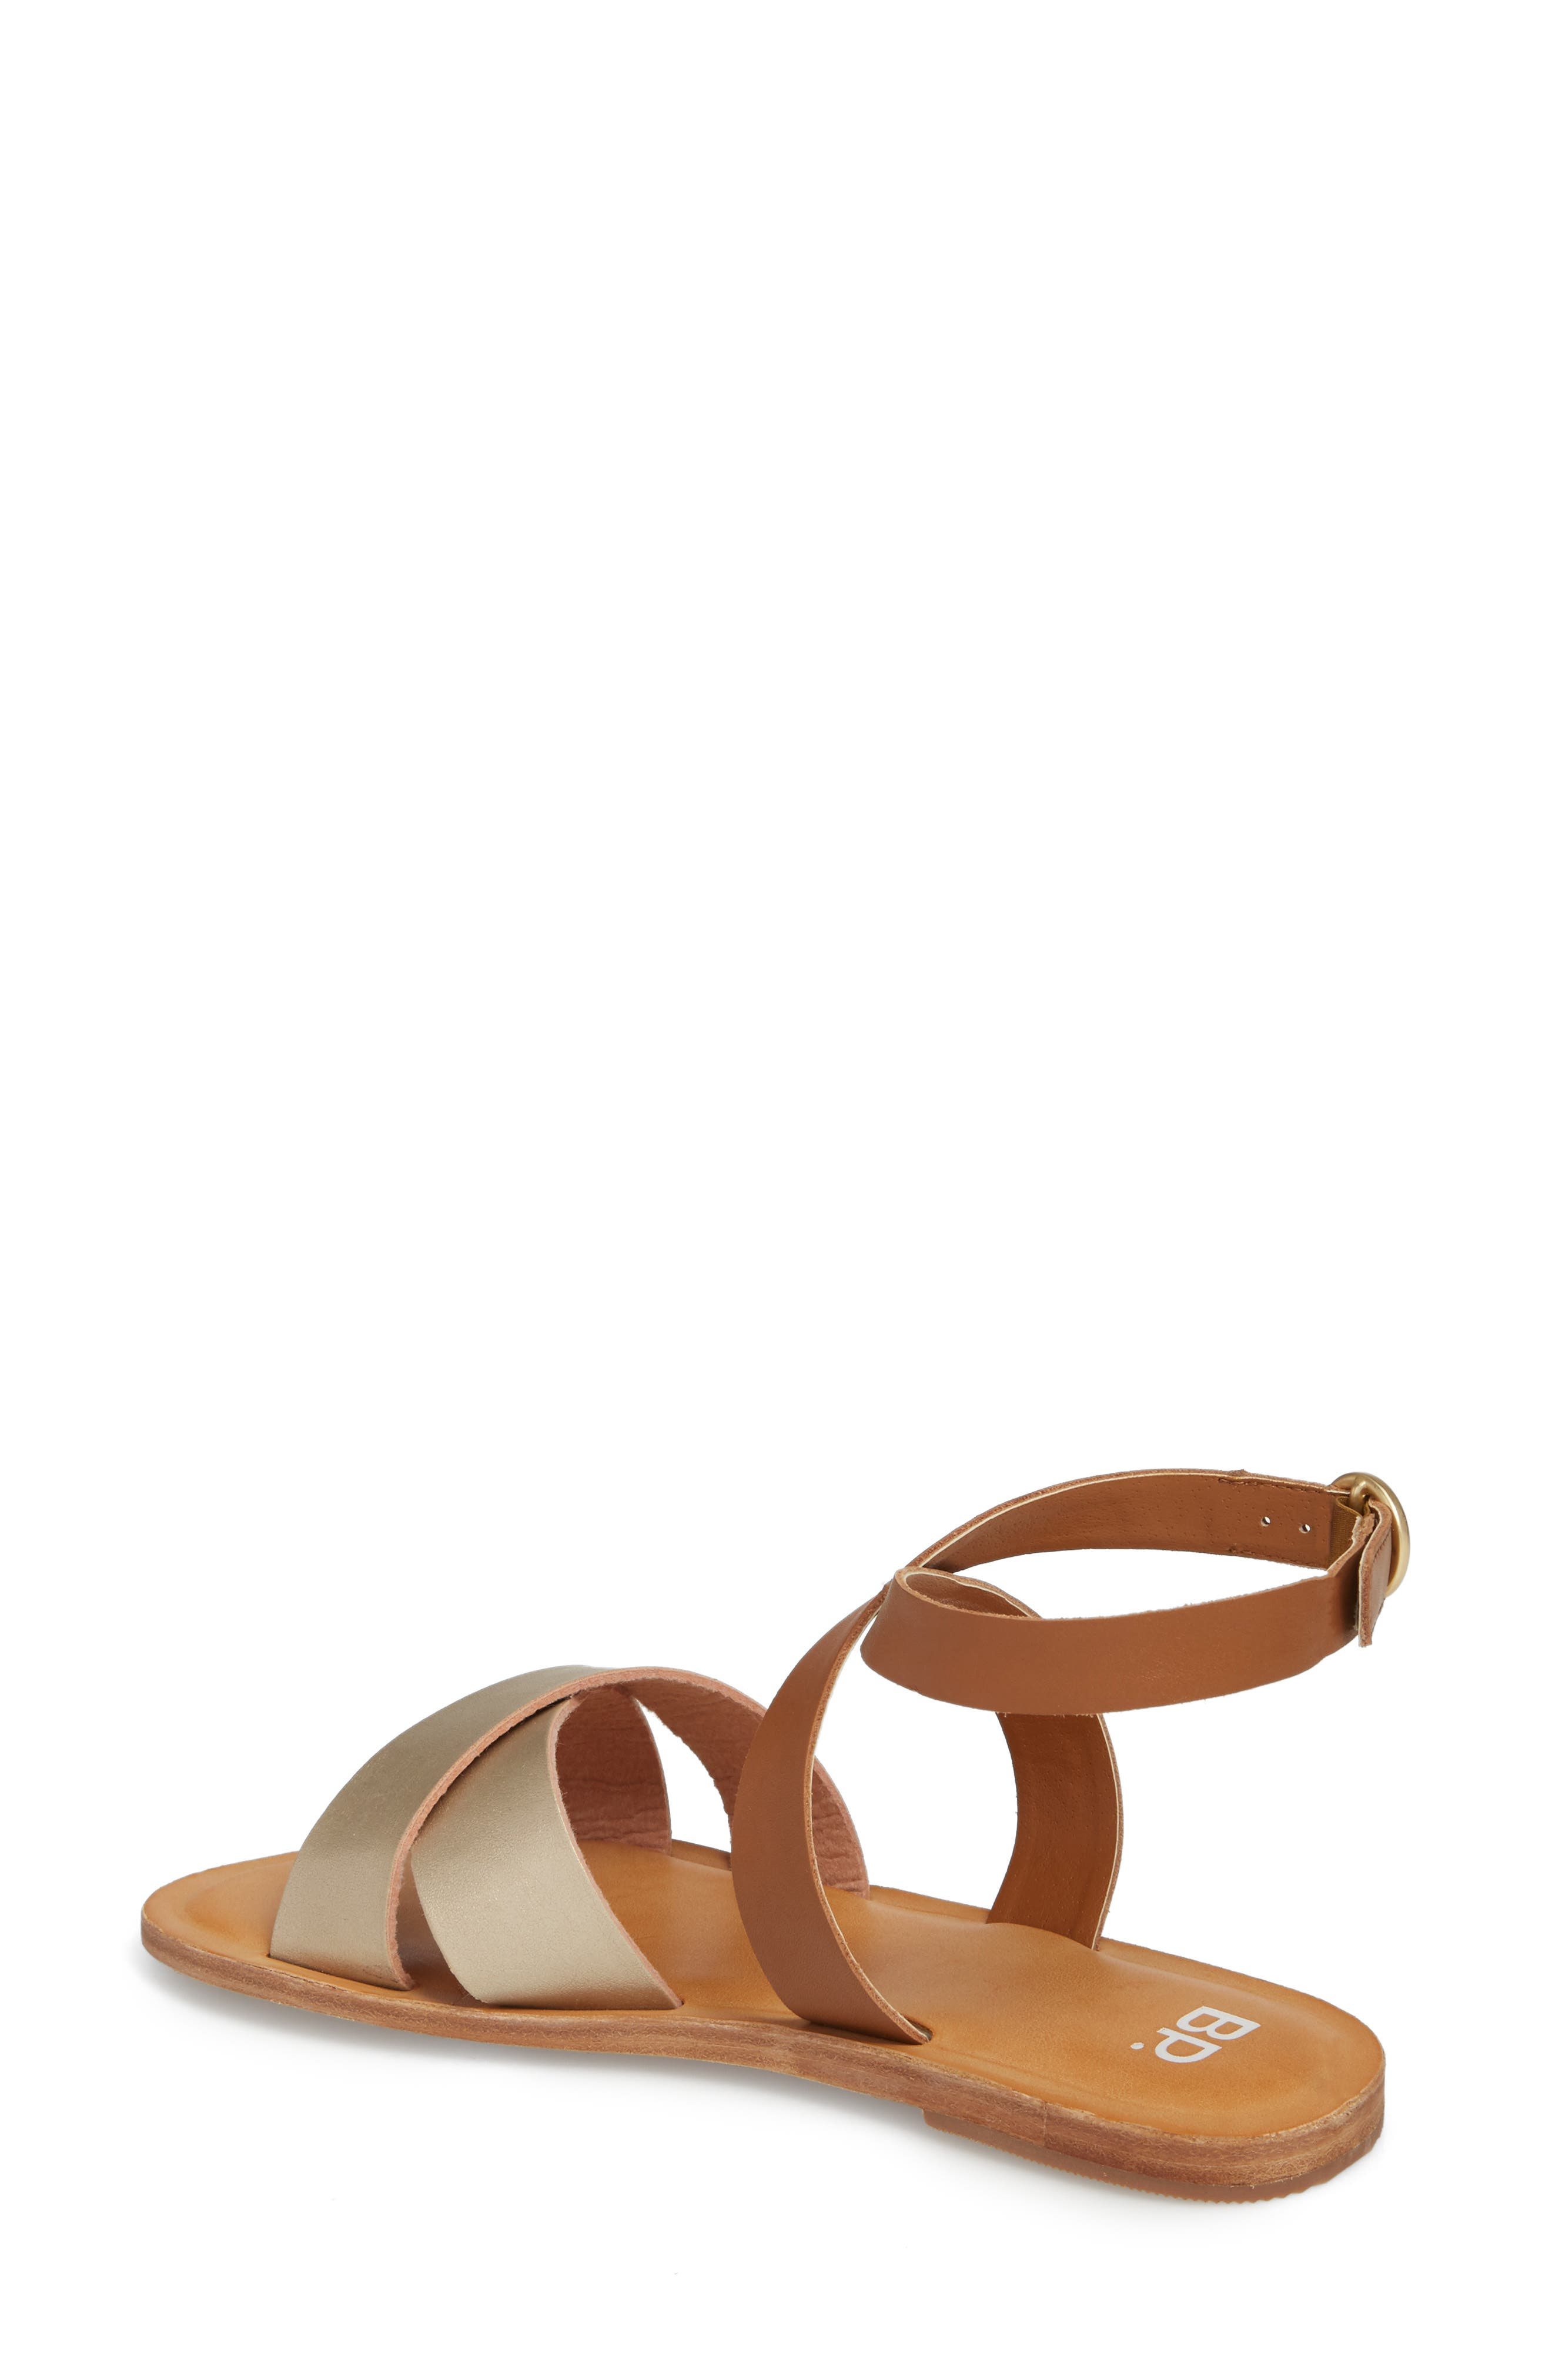 Reed Strappy Flat Sandal,                             Alternate thumbnail 2, color,                             Gold/Cognac